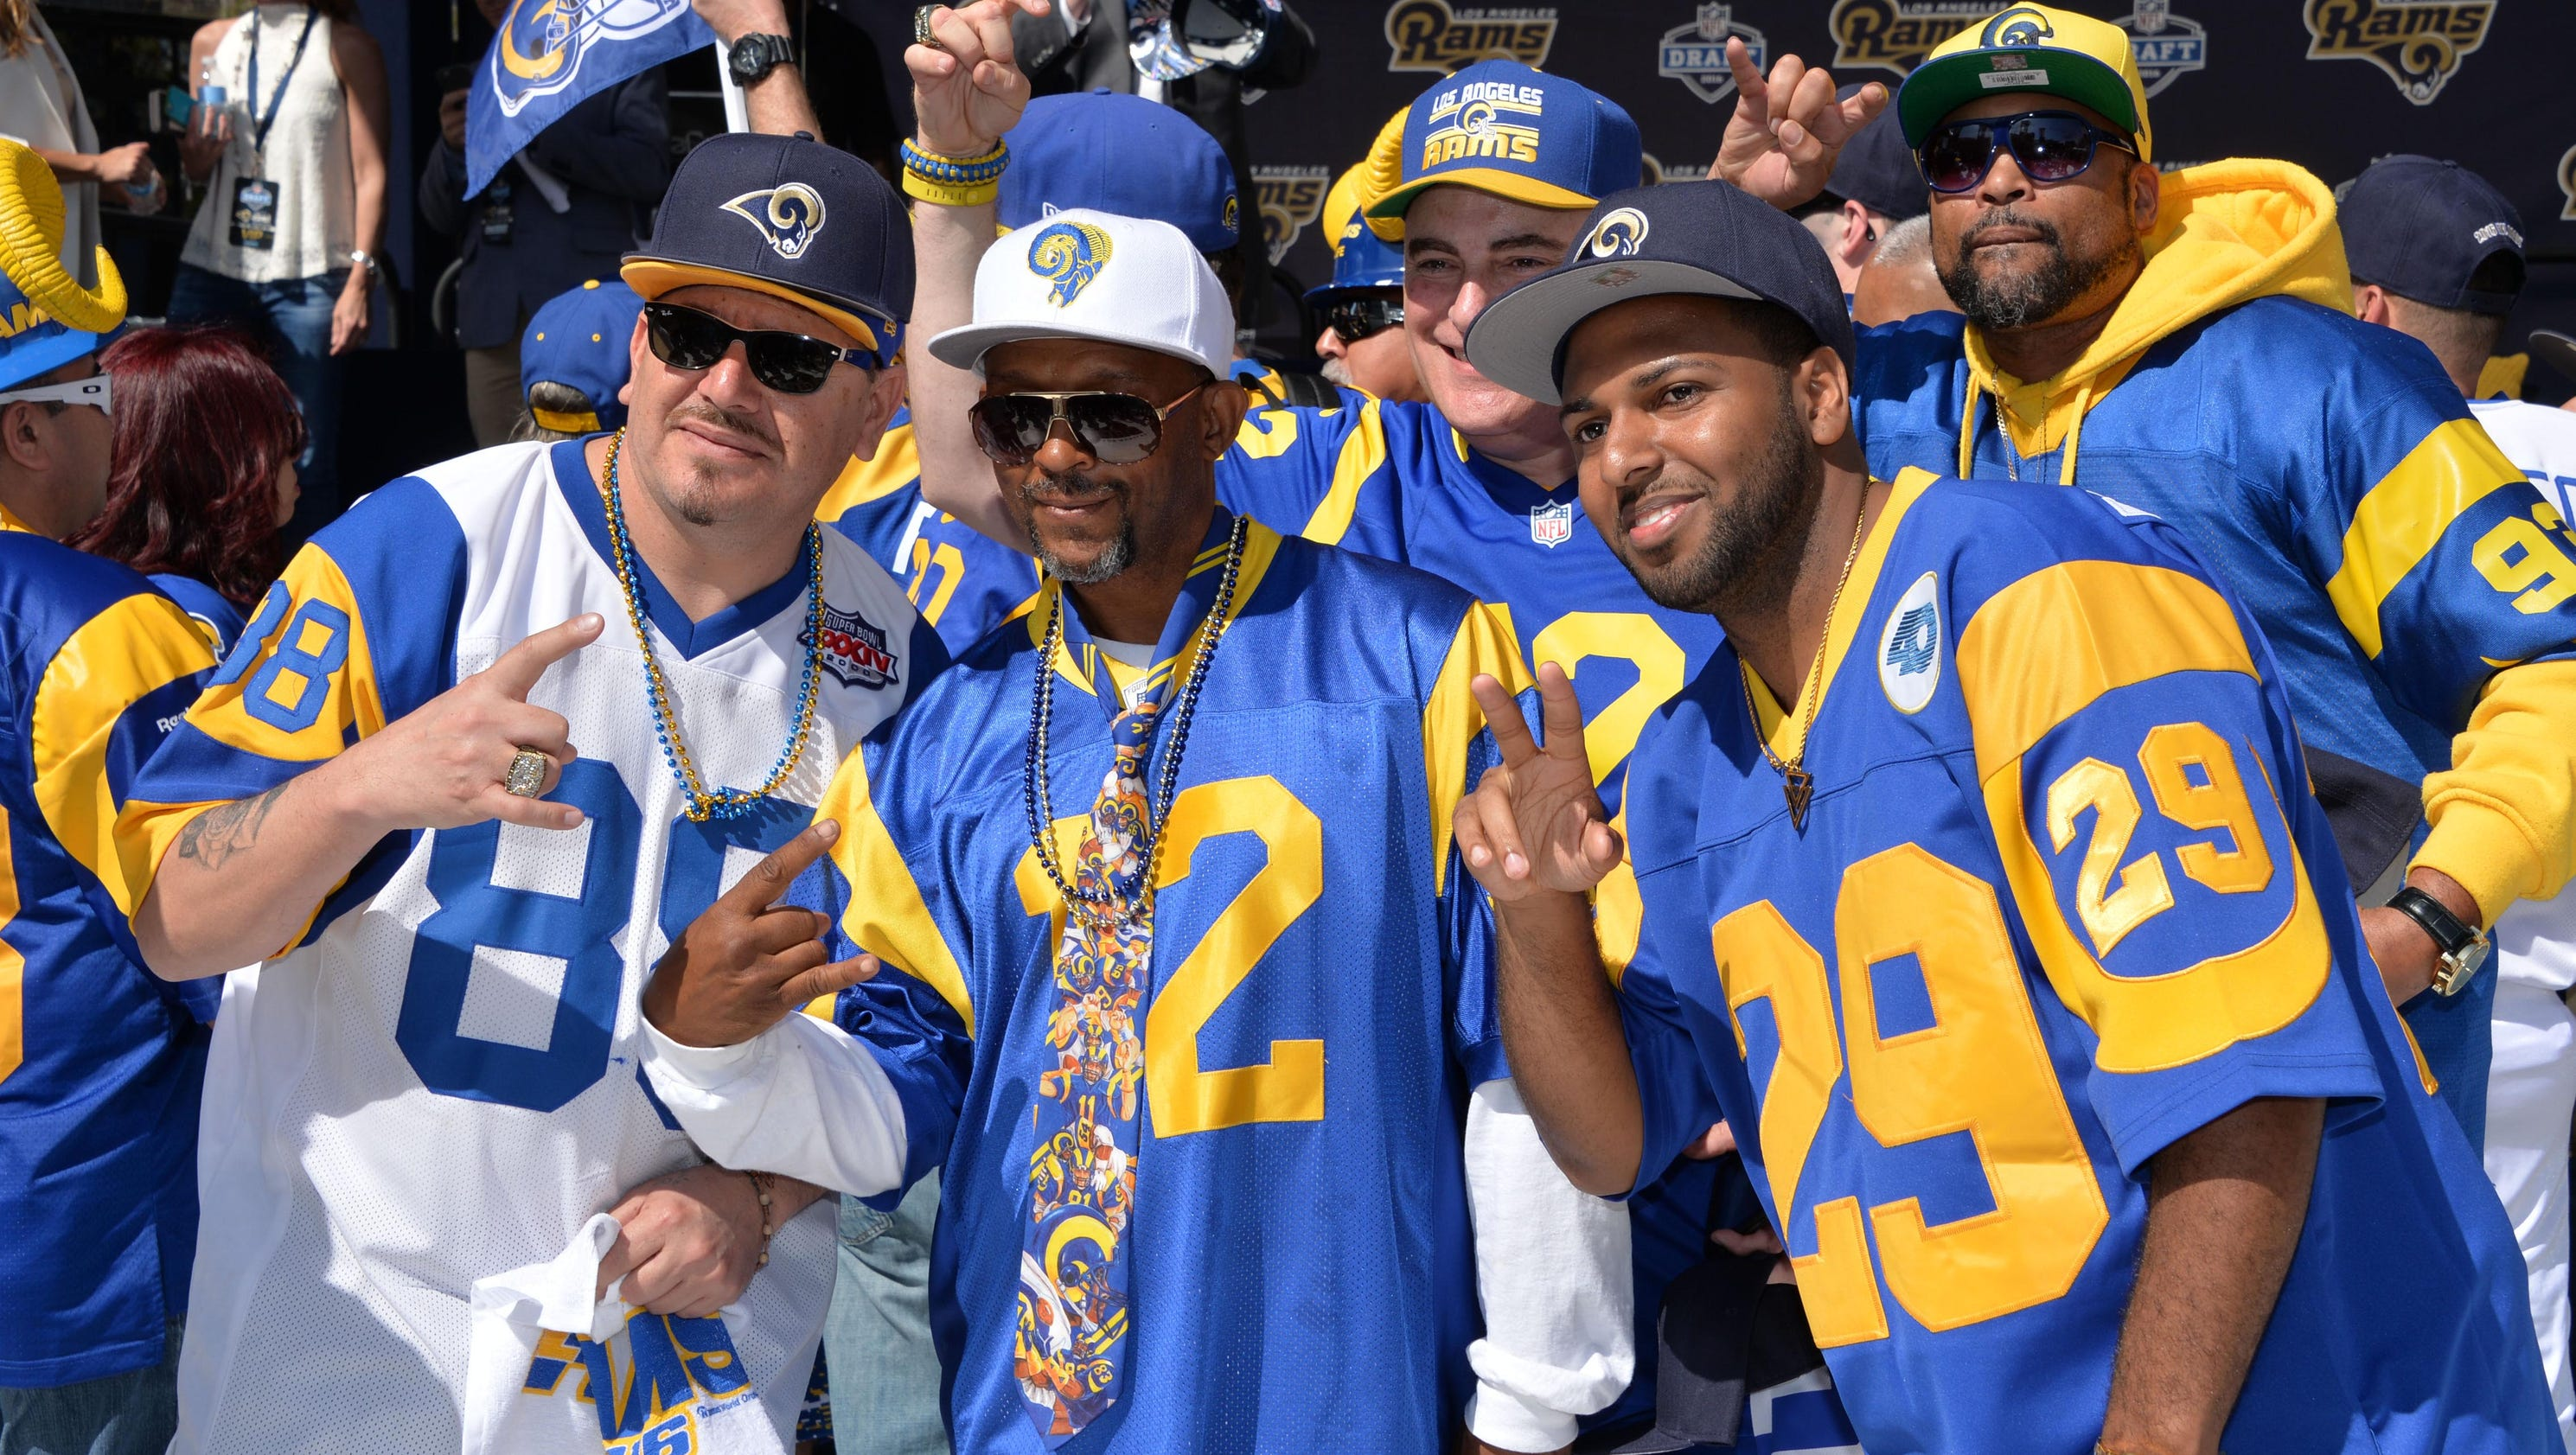 635997020543751933-usp-nfl-los-angeles-rams-draft-party-81519171-1-